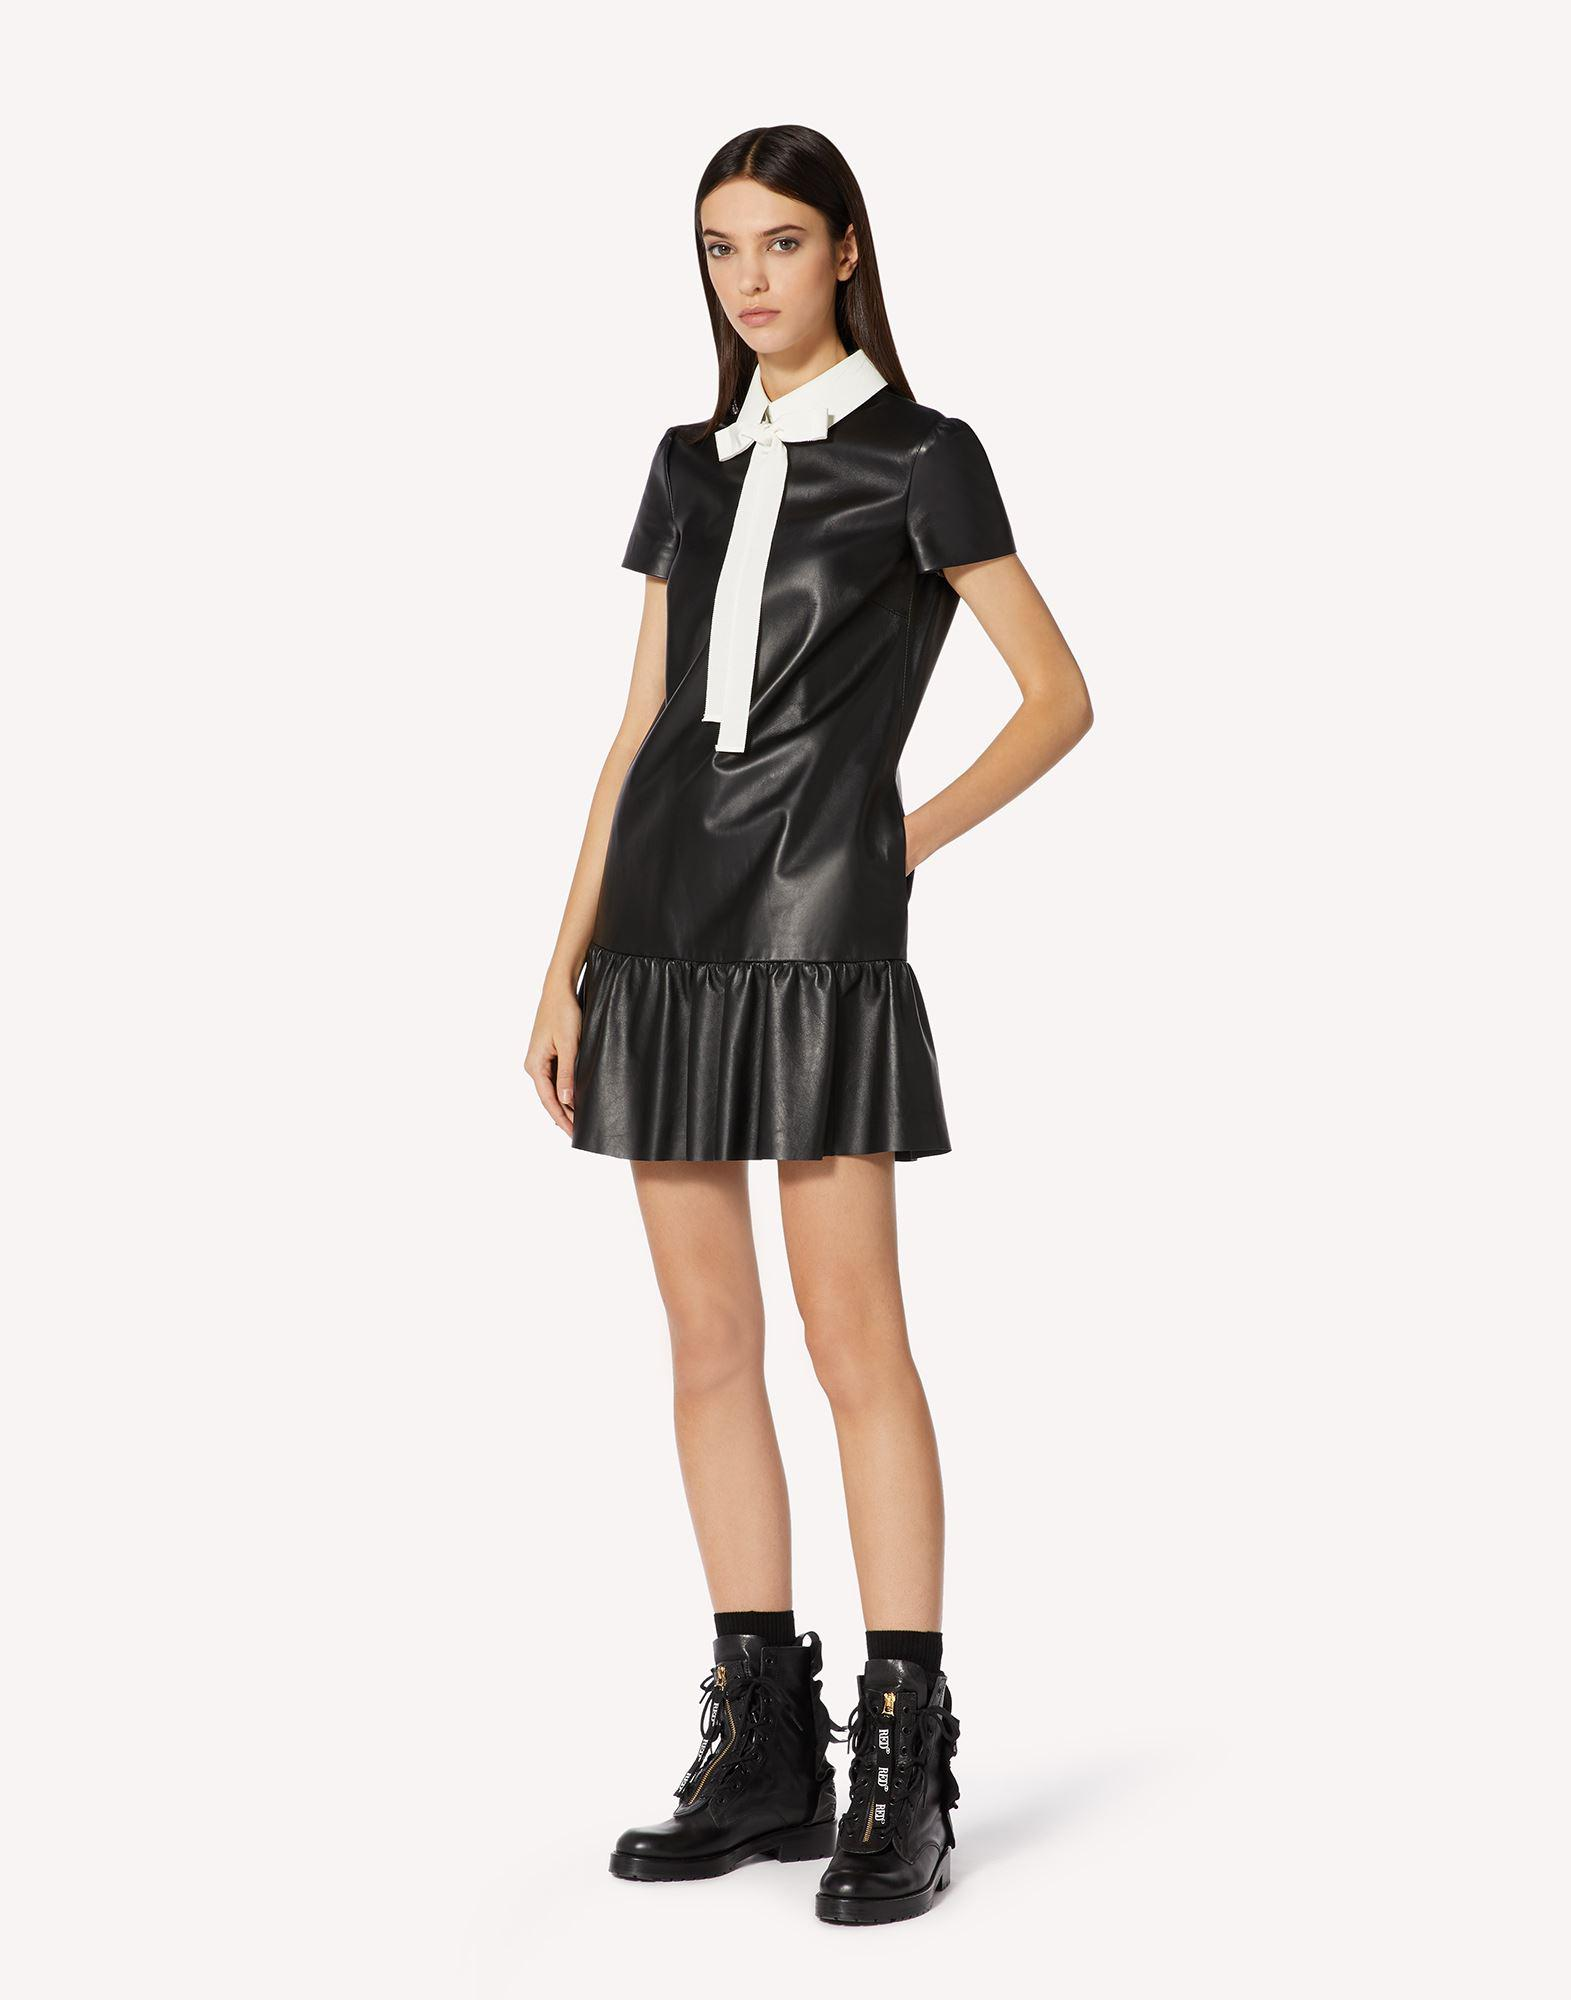 NAPPA LEATHER DRESS WITH COLLAR DETAIL 2